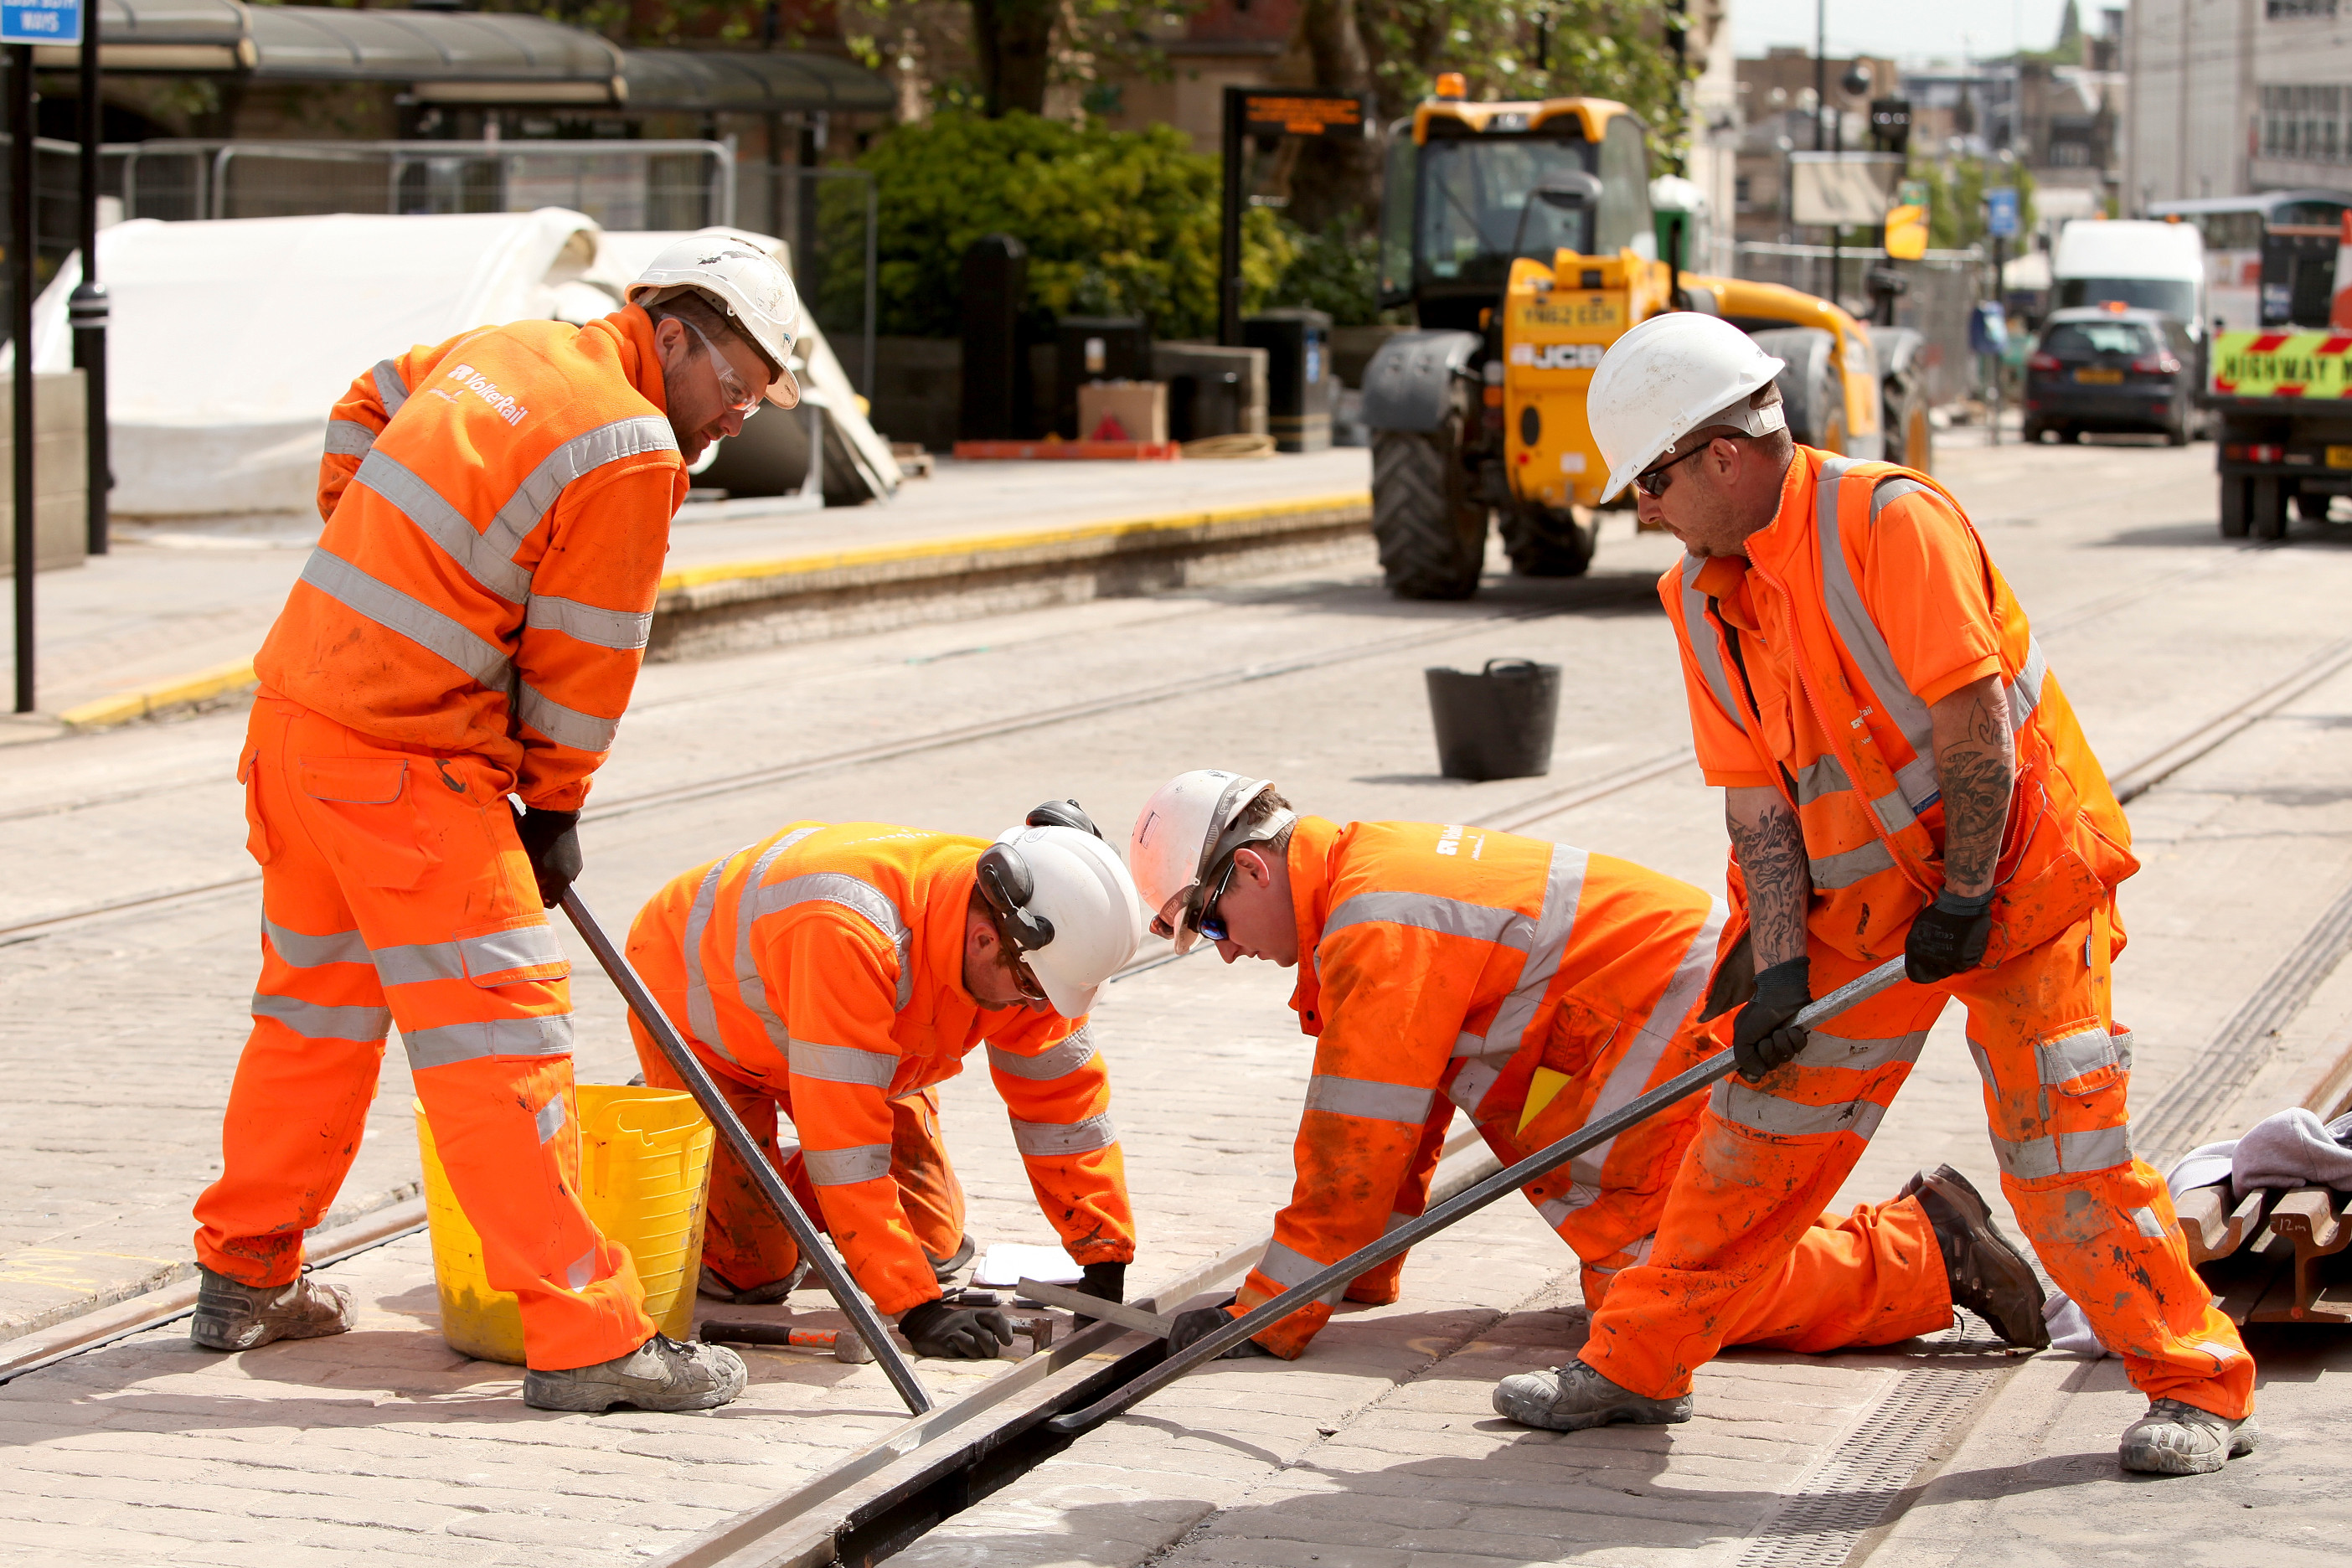 Supertram rail replacement reaches final stage